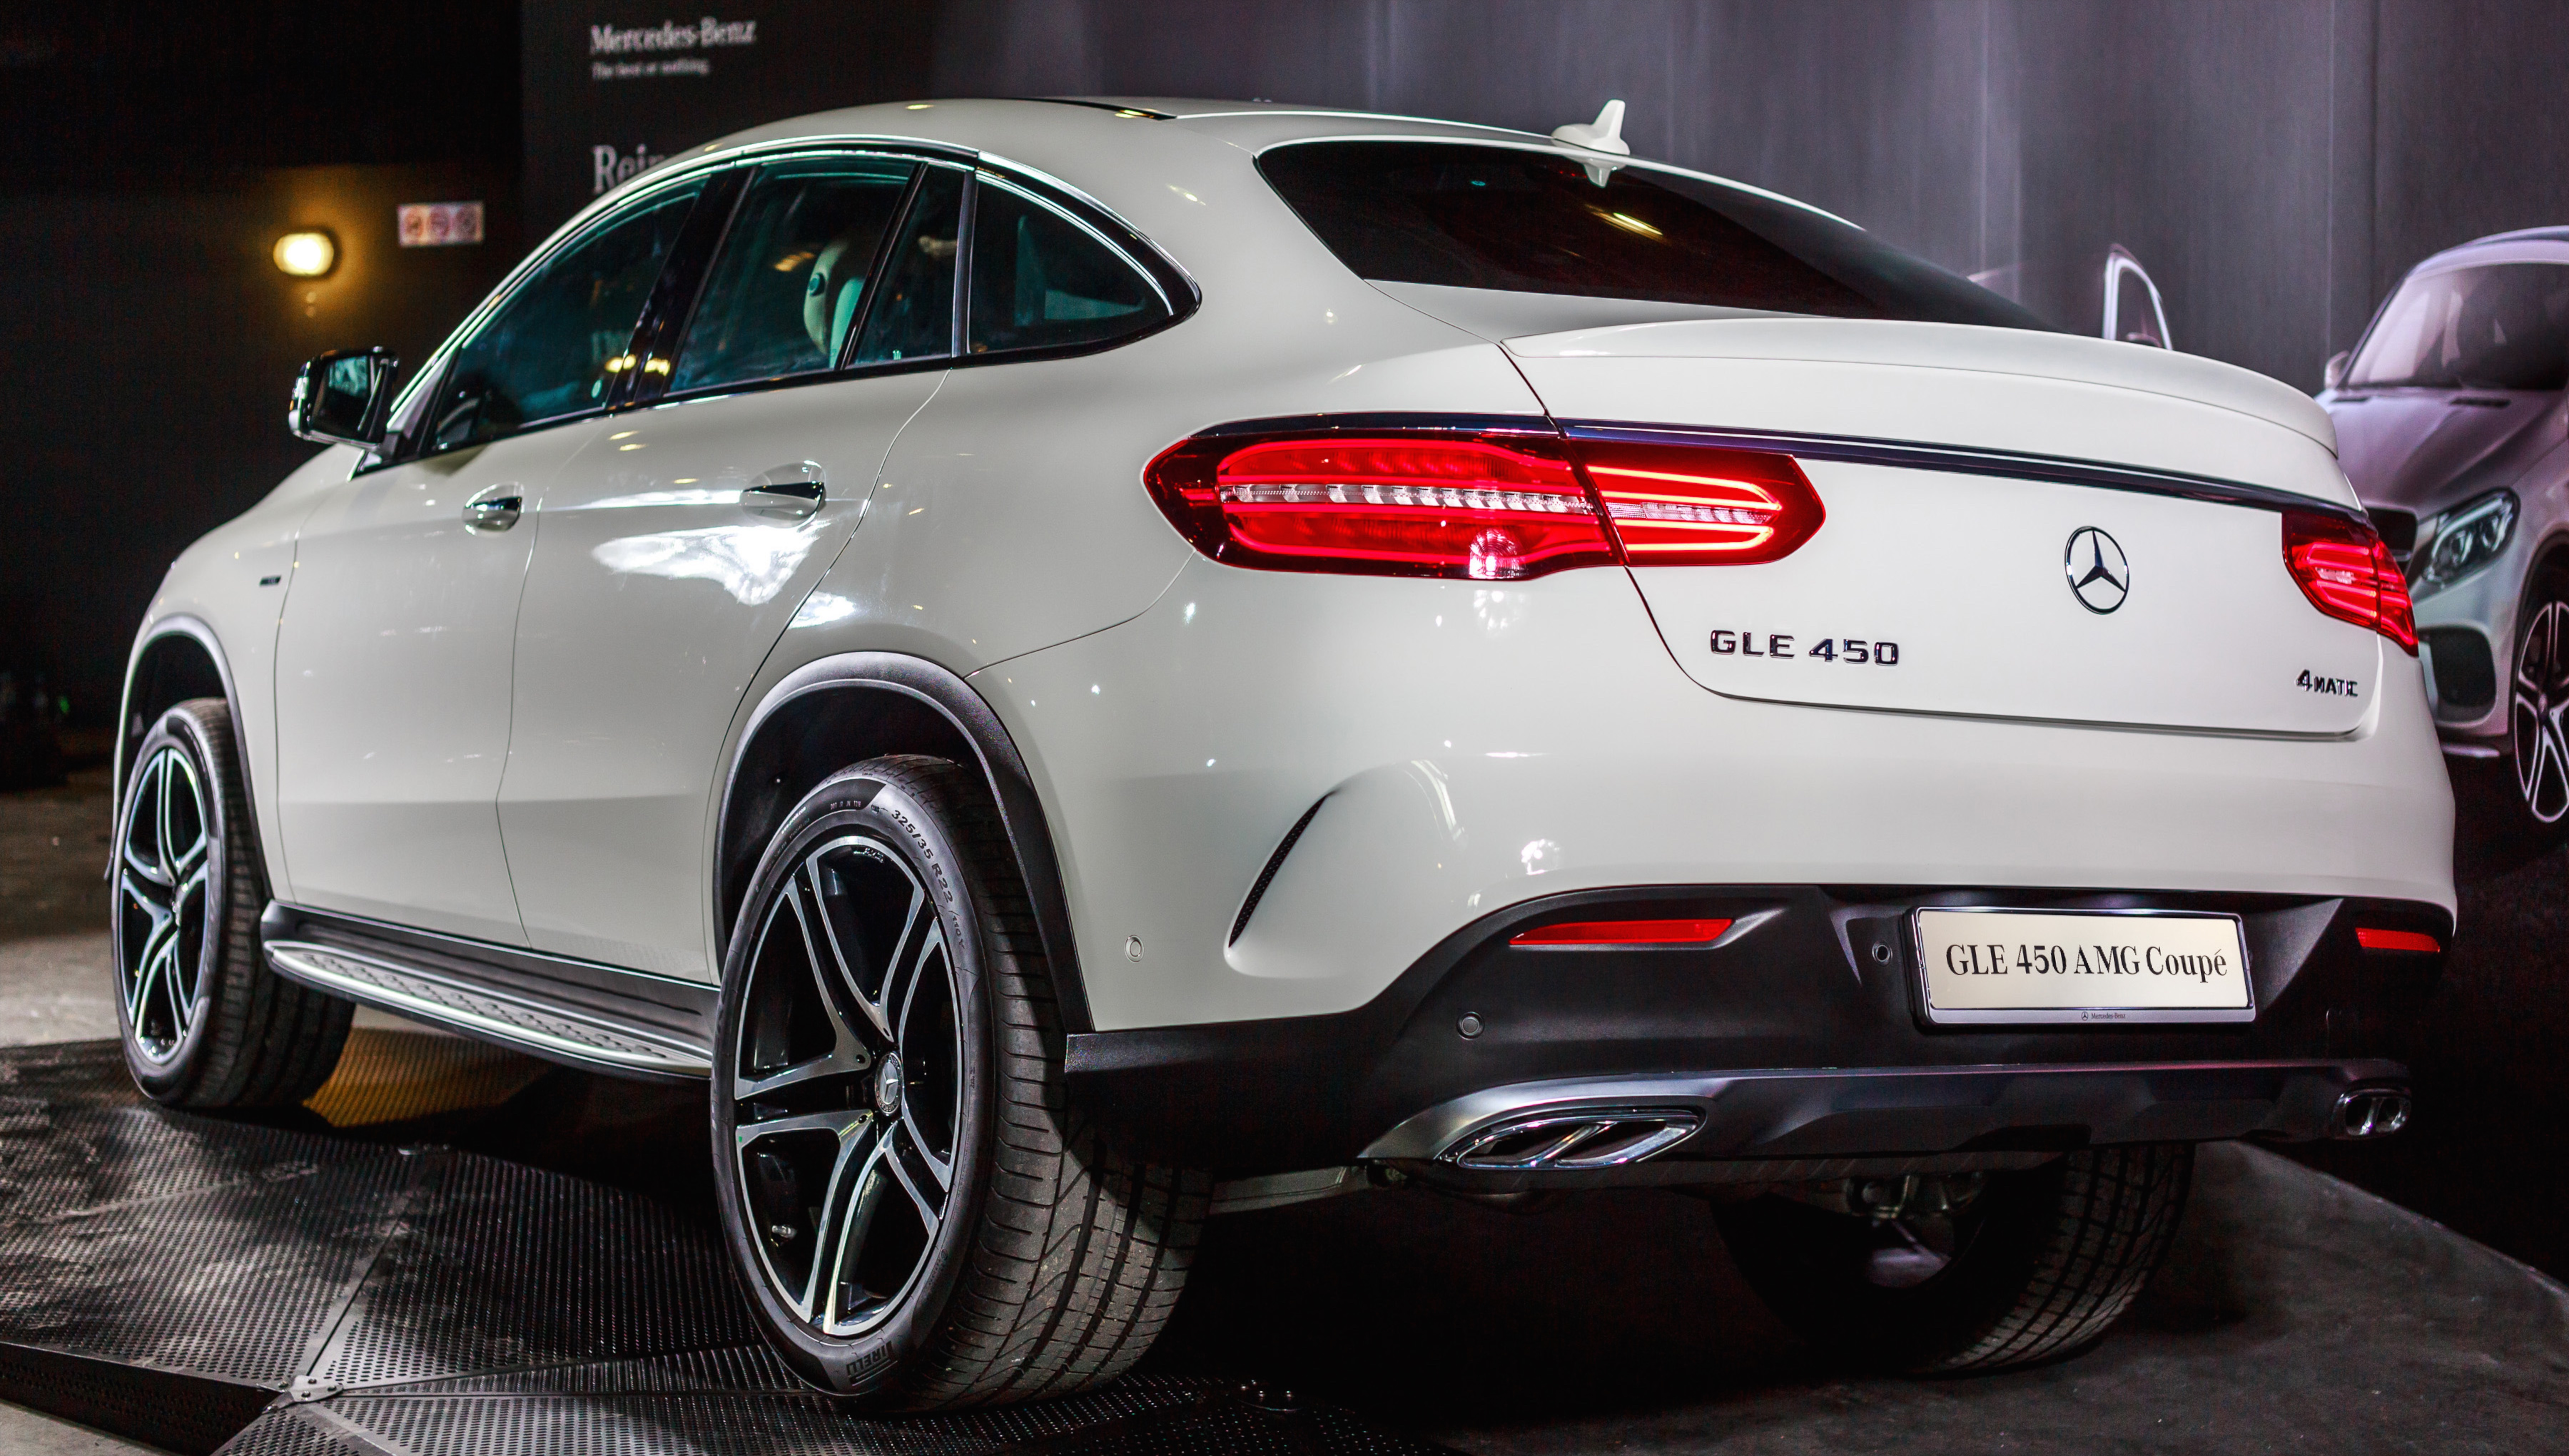 https://s3.paultan.org/image/2016/01/2016-mercedes-benz-gle-450-coupe-launch-official-058.jpg